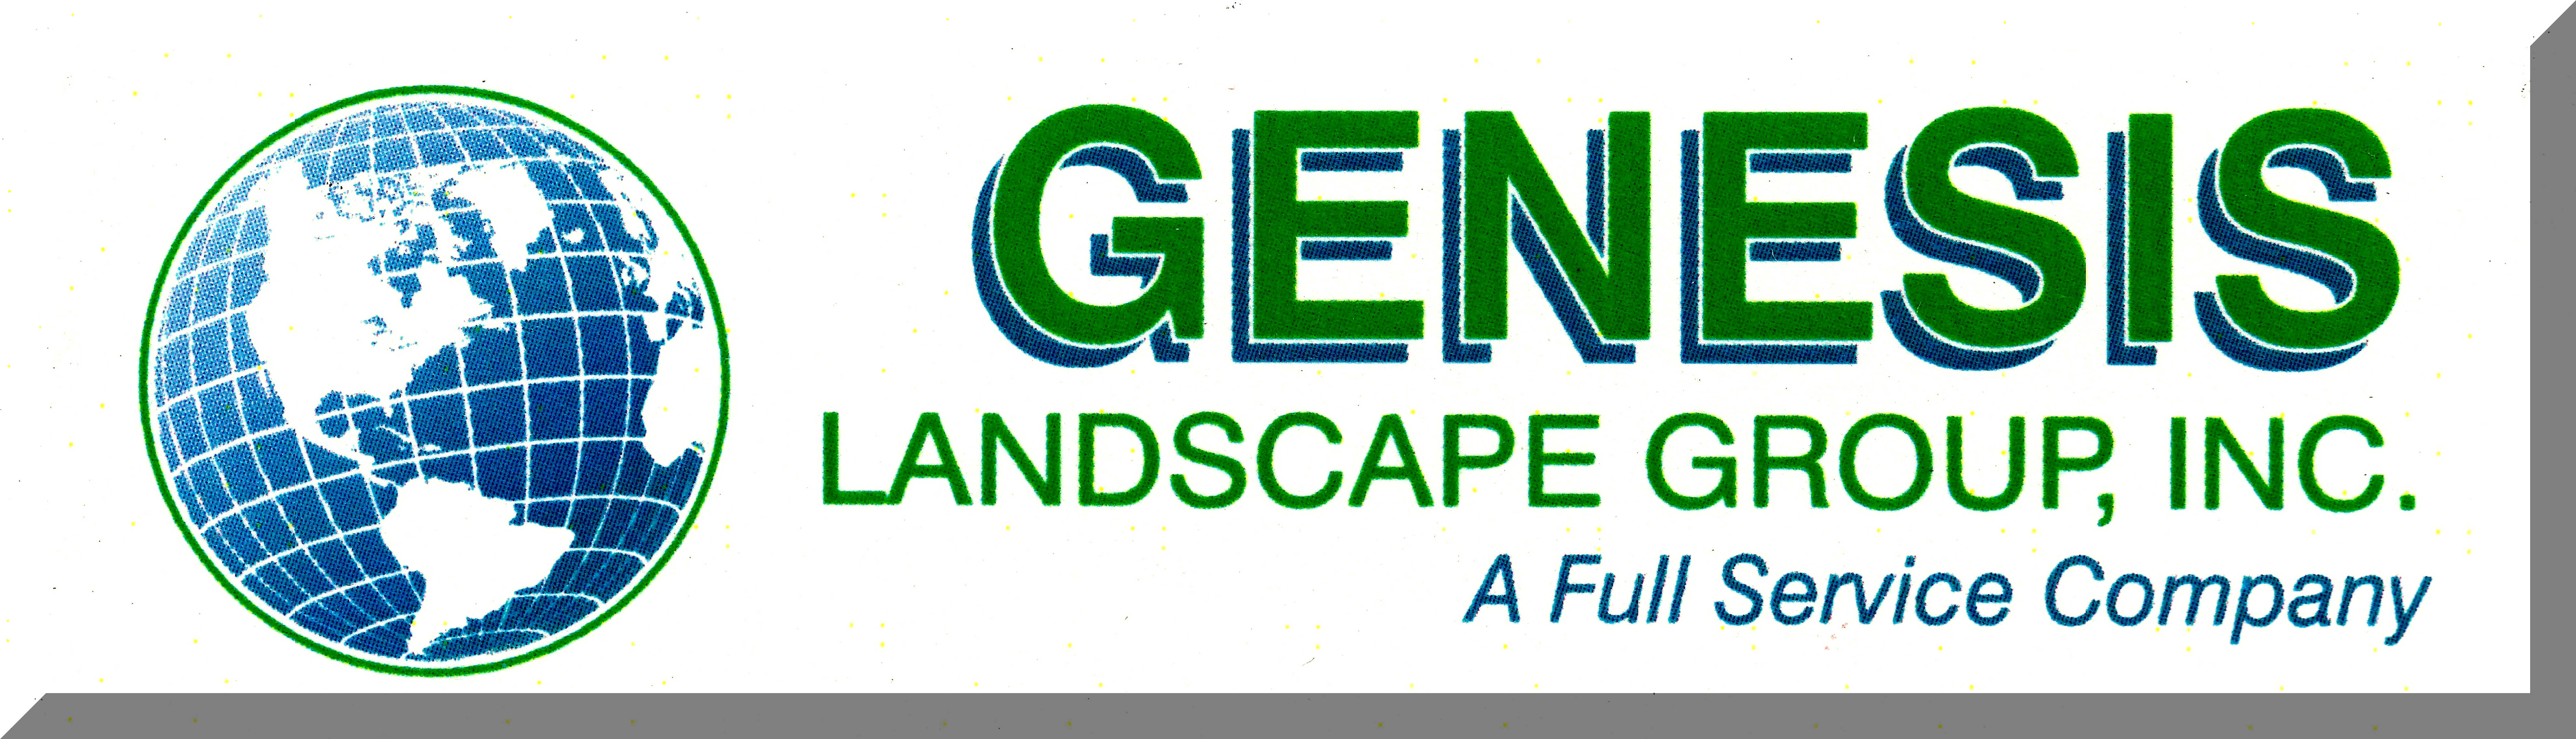 Genesis Landscape Group, Inc.